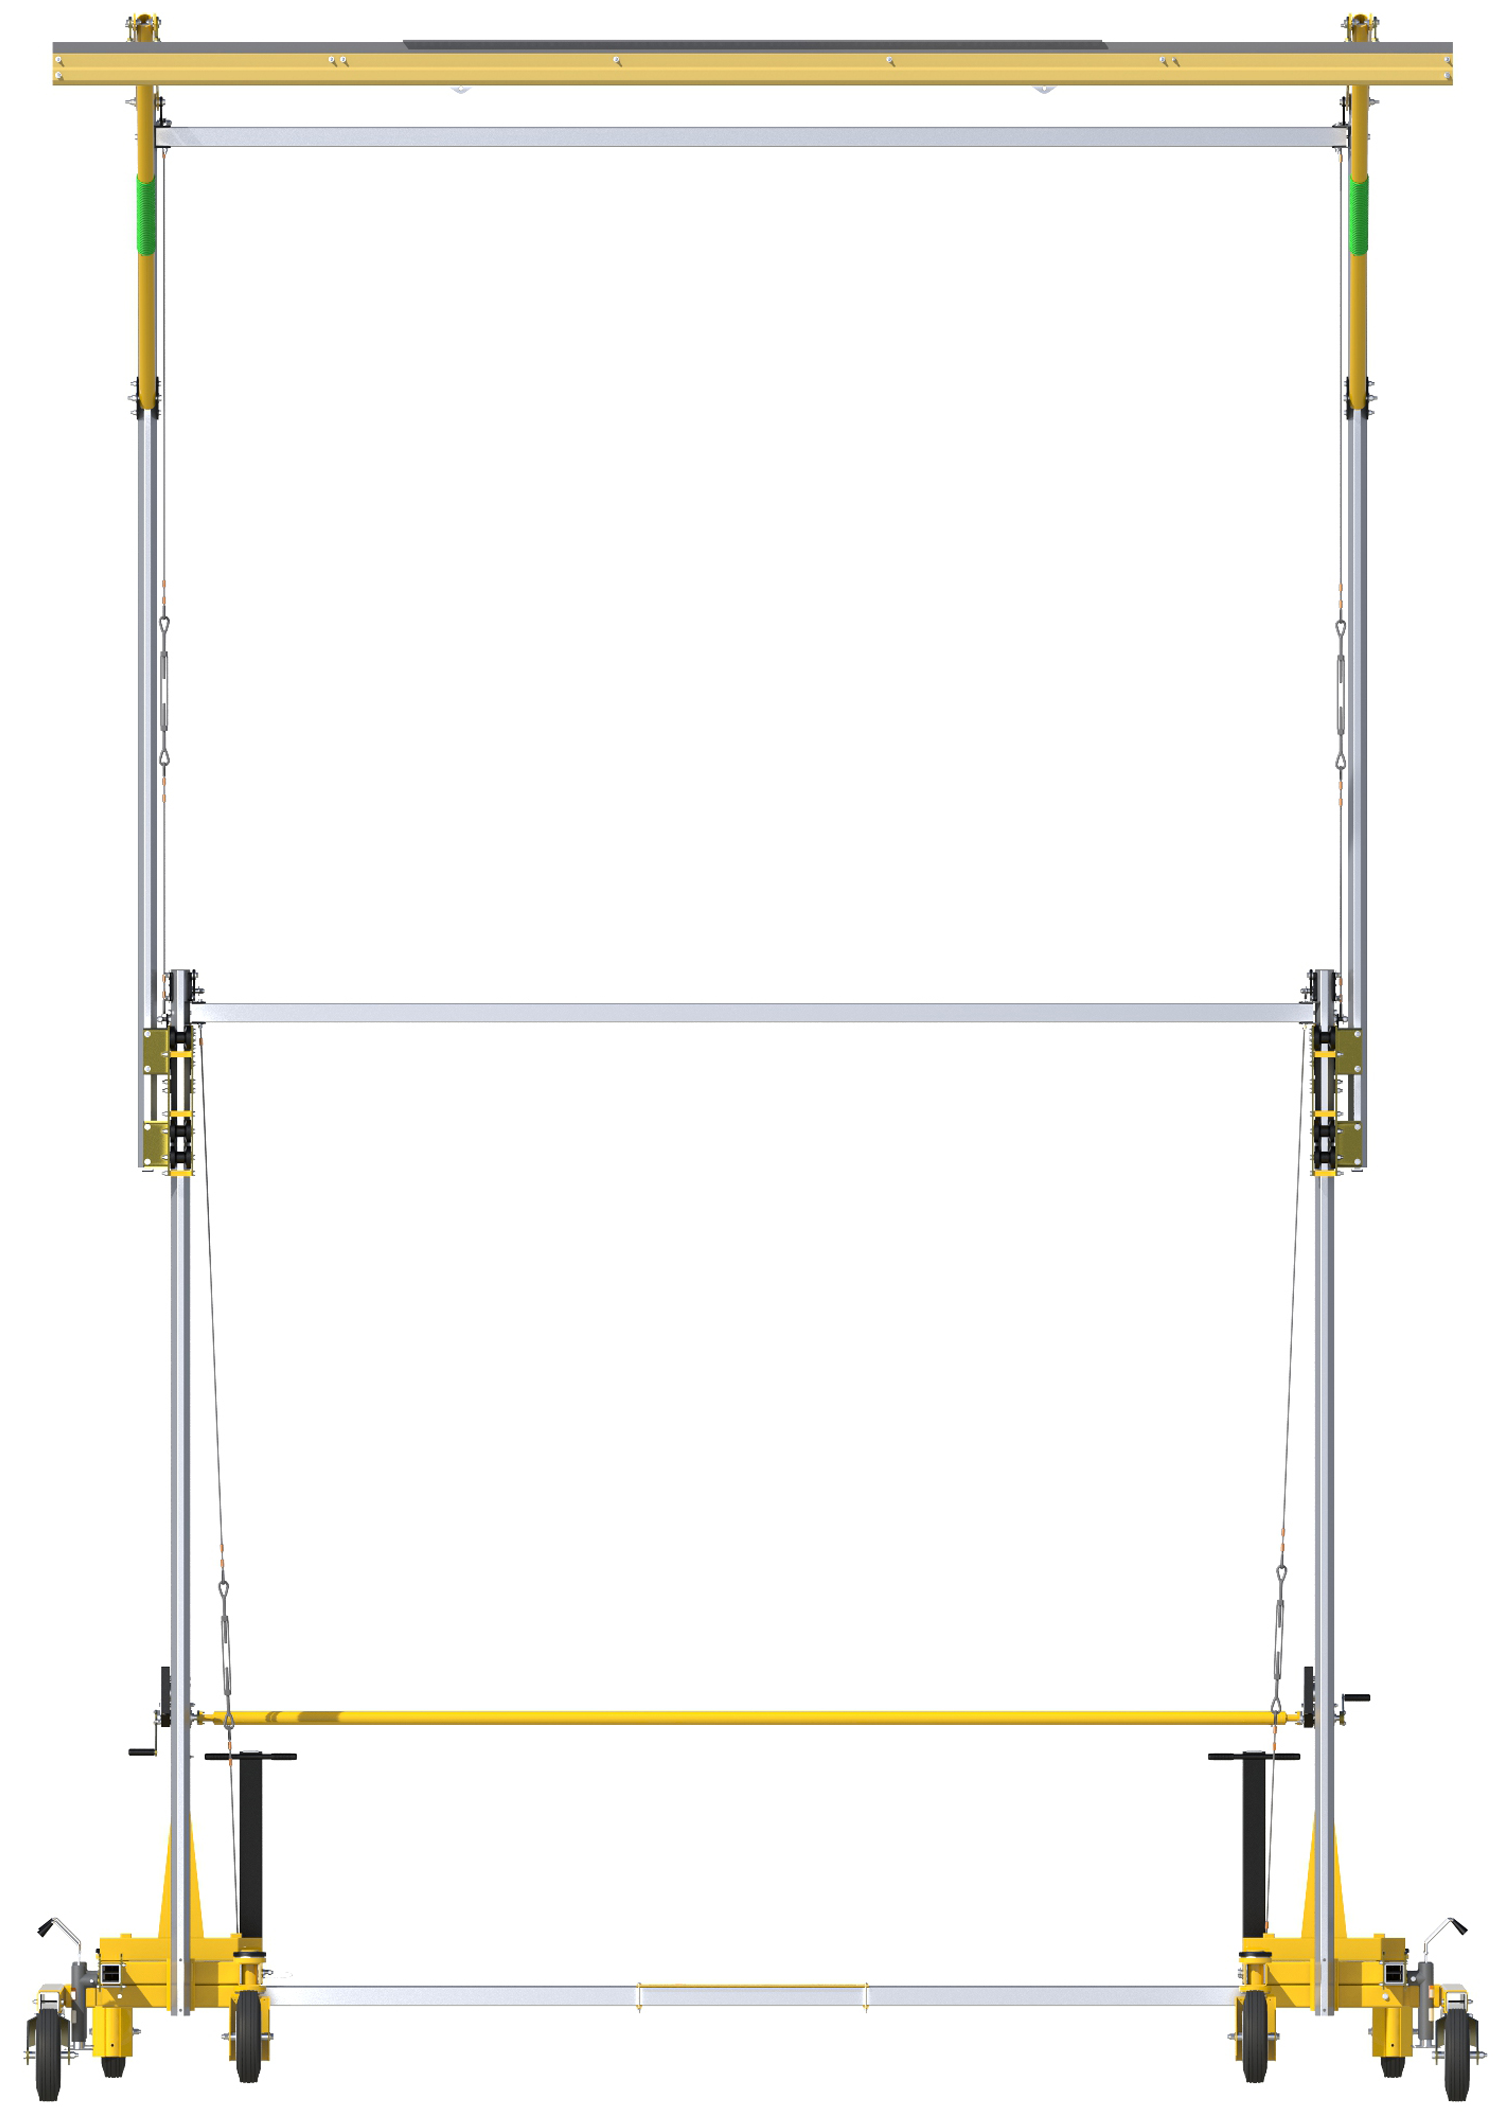 FlexiGuard Portable C-Frame Fall Arrest System Adjustable Height, Front View